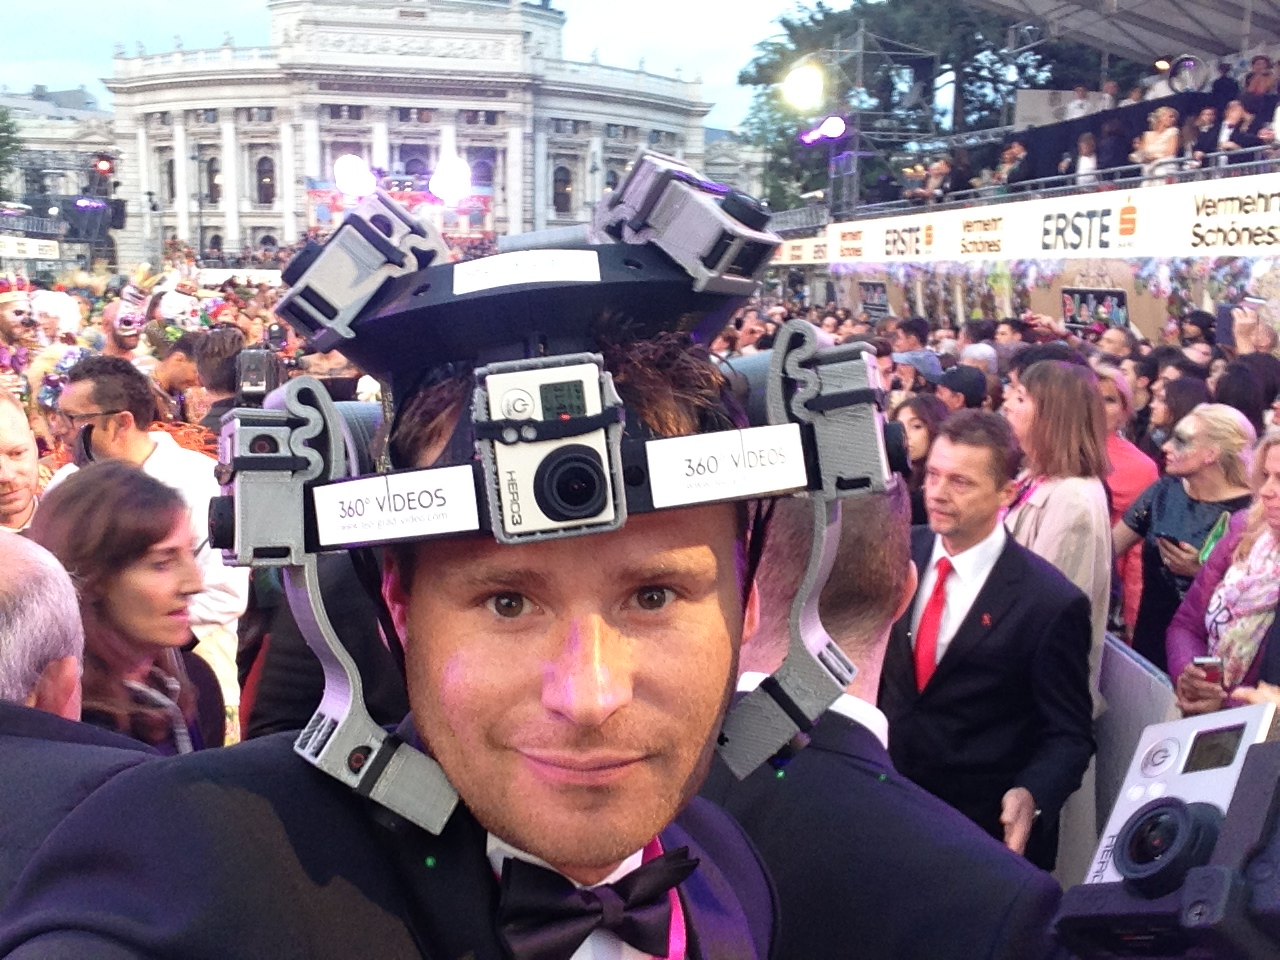 Helm Kamera Life Ball 360 Grad Video